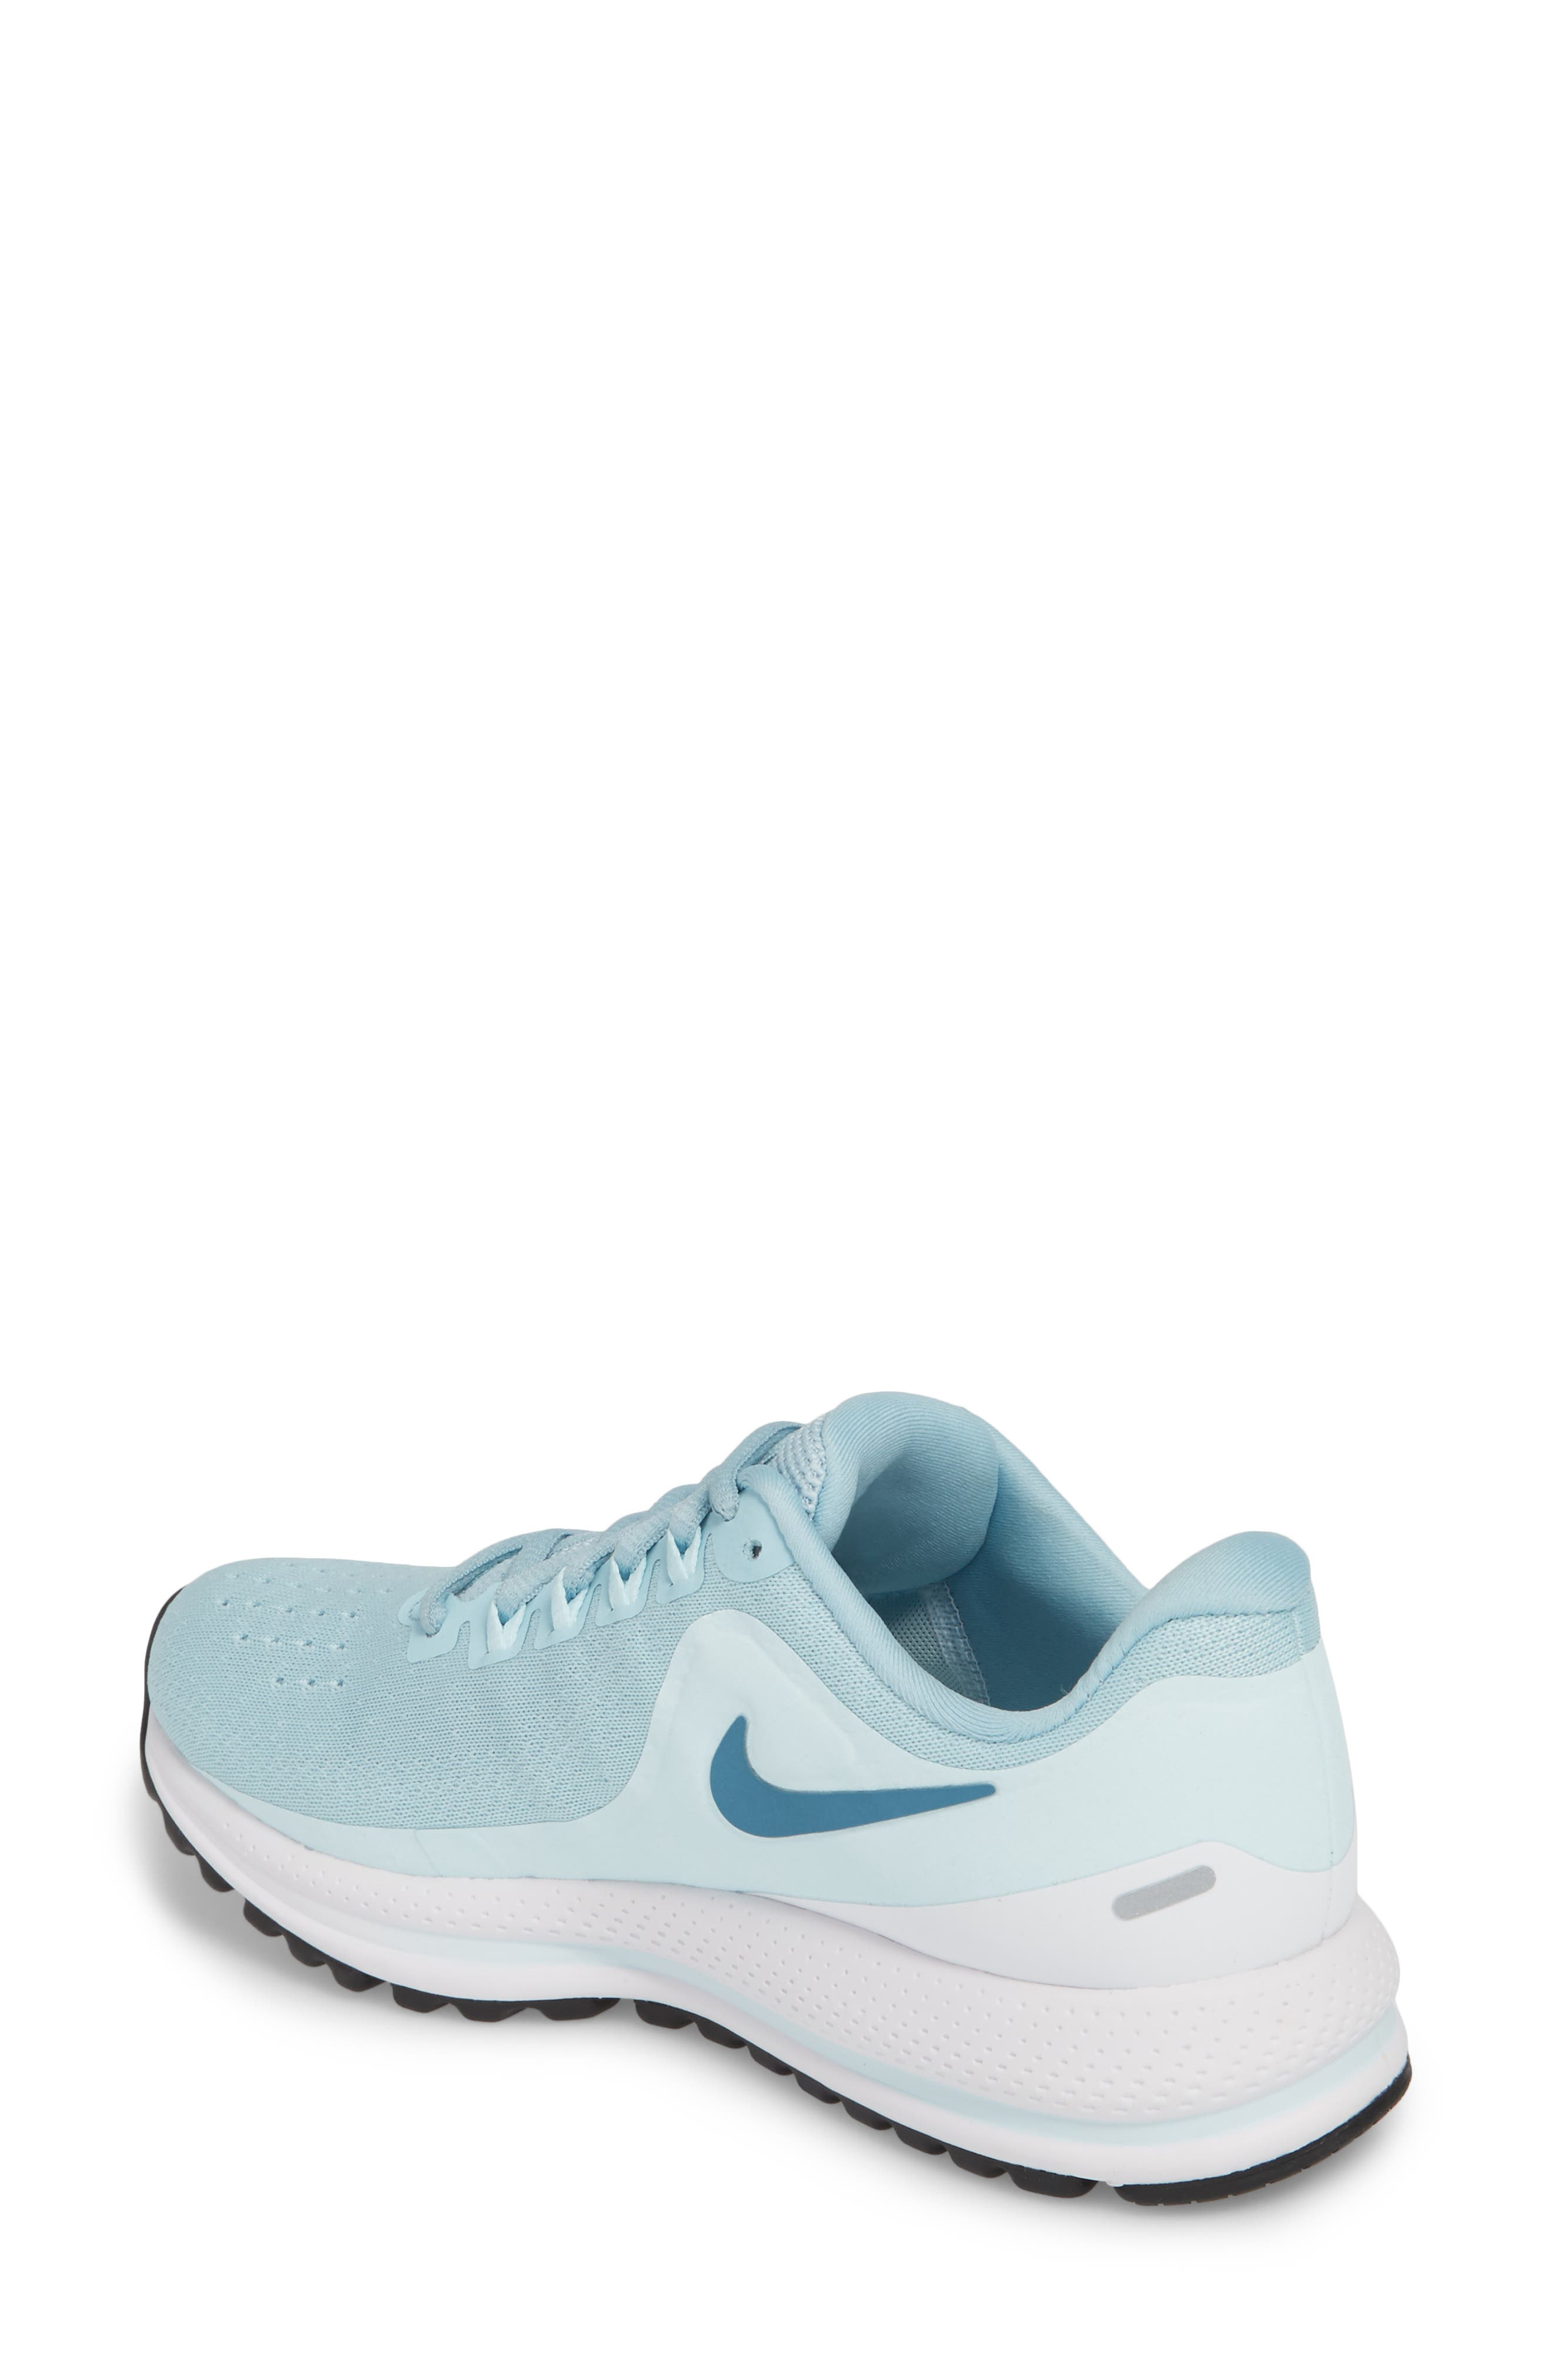 Air Zoom Vomero 13 Running Shoe,                             Alternate thumbnail 17, color,